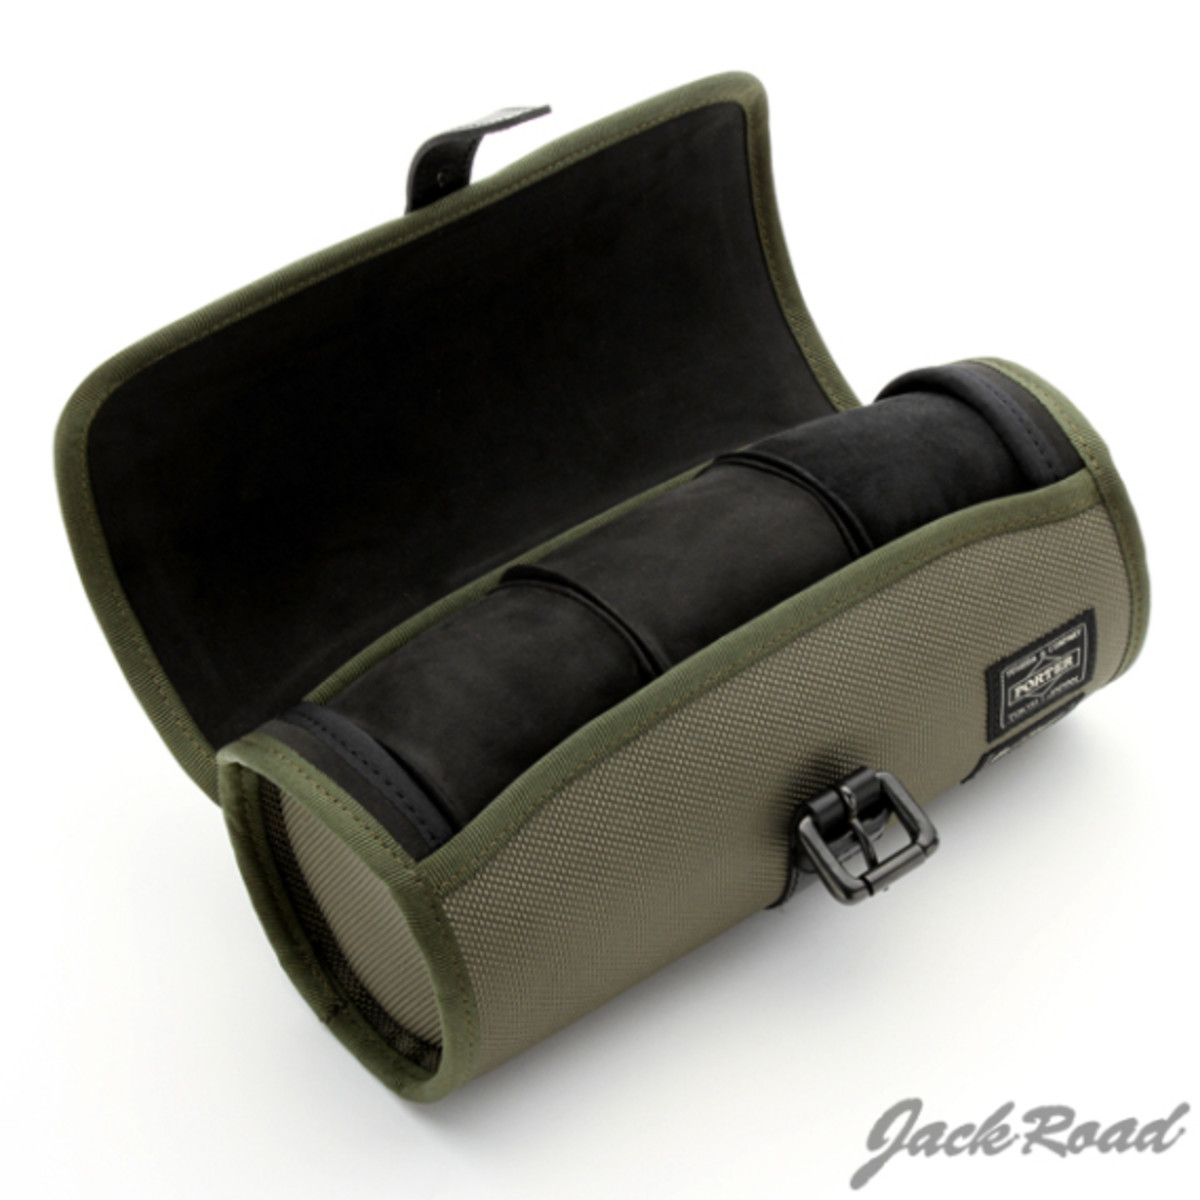 jack-road-porter-watch-carrying-case-03